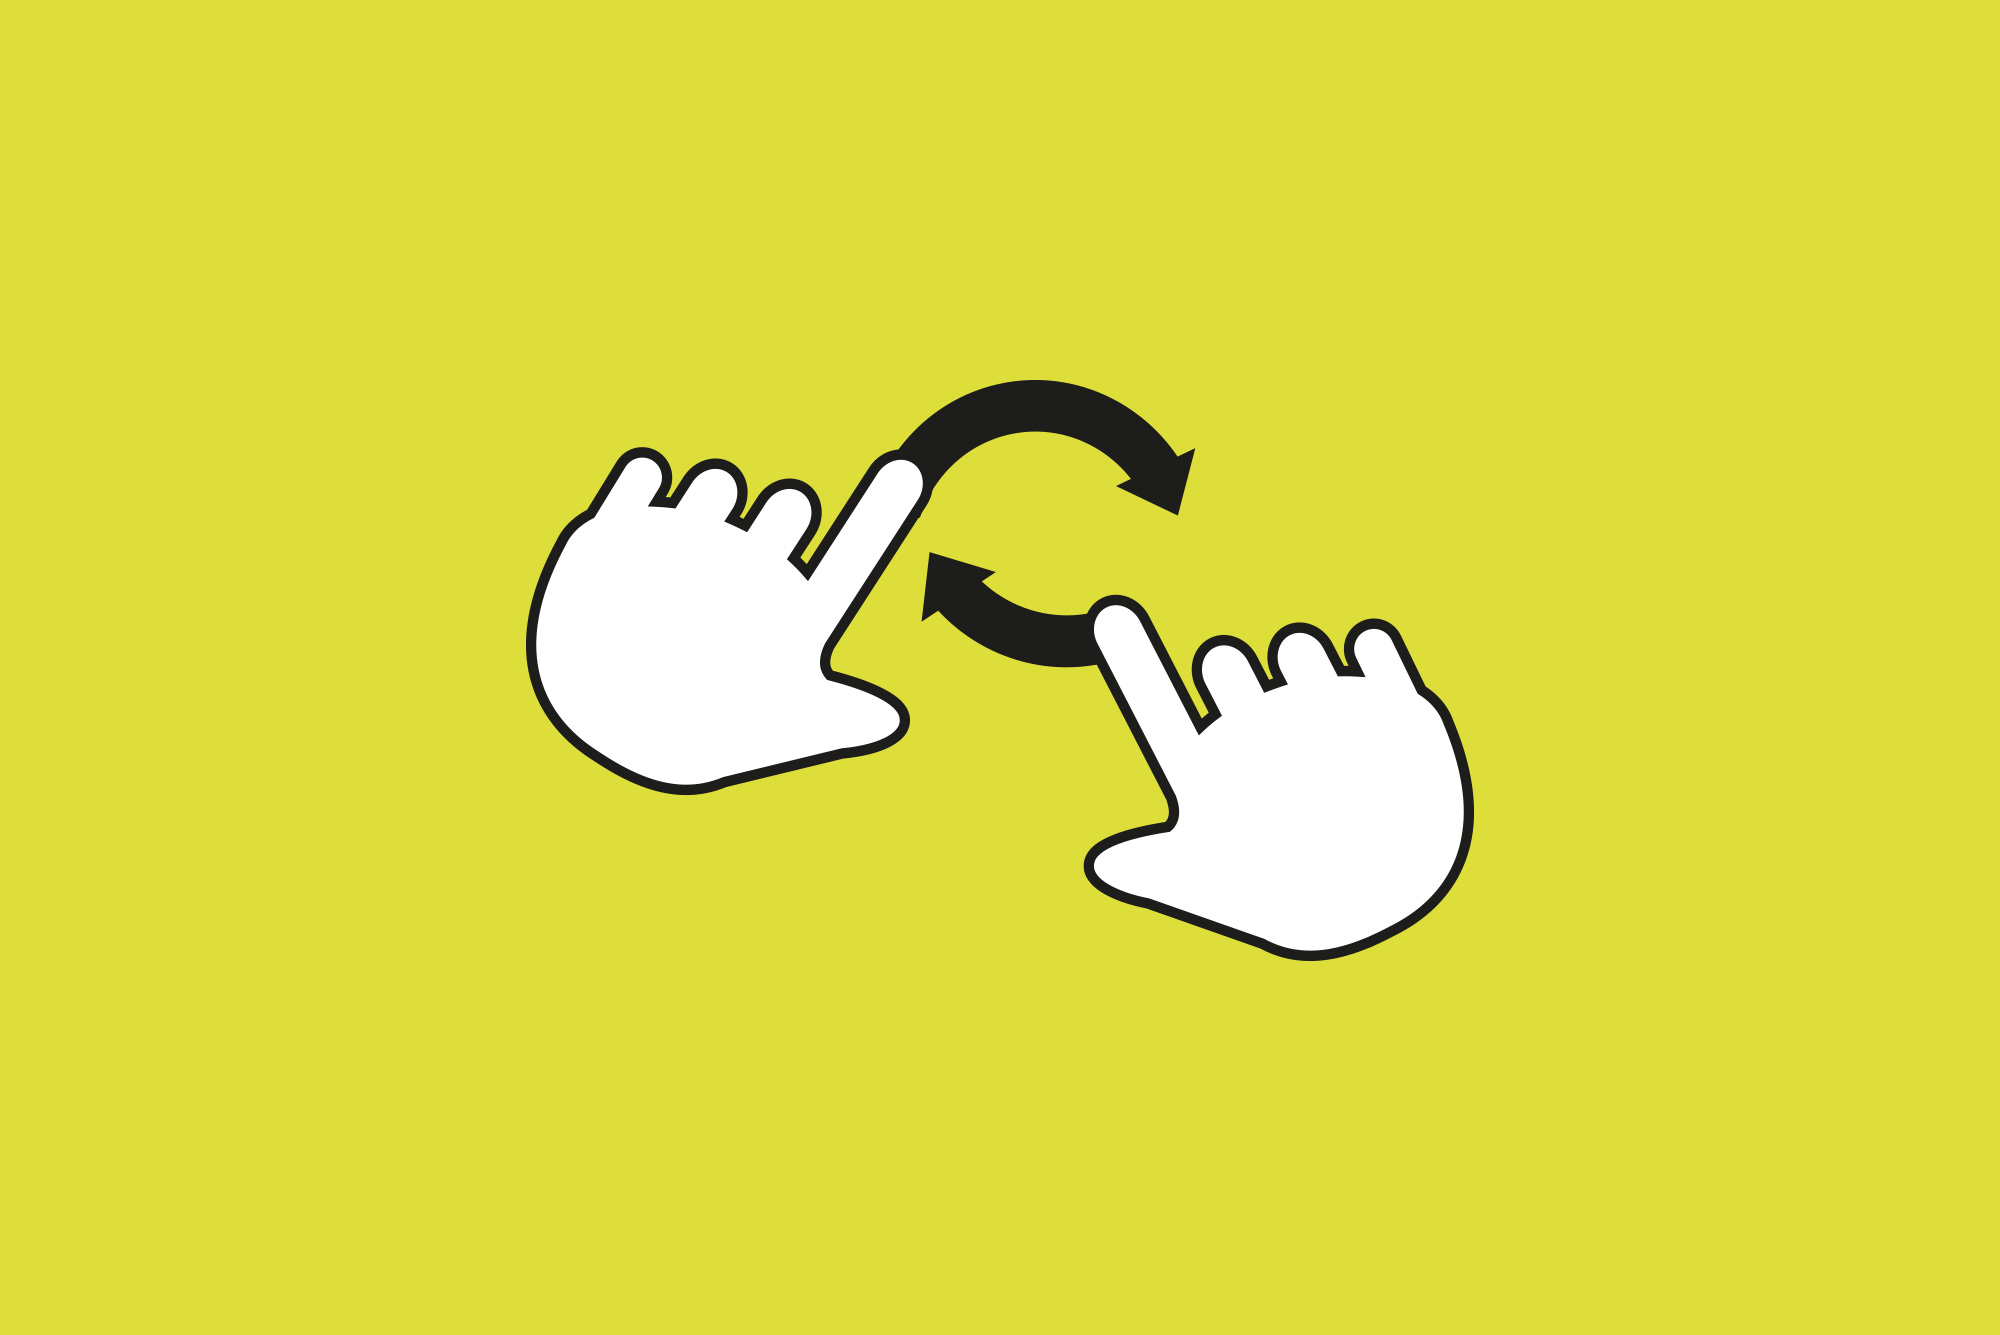 Hands making gestures on yellow background